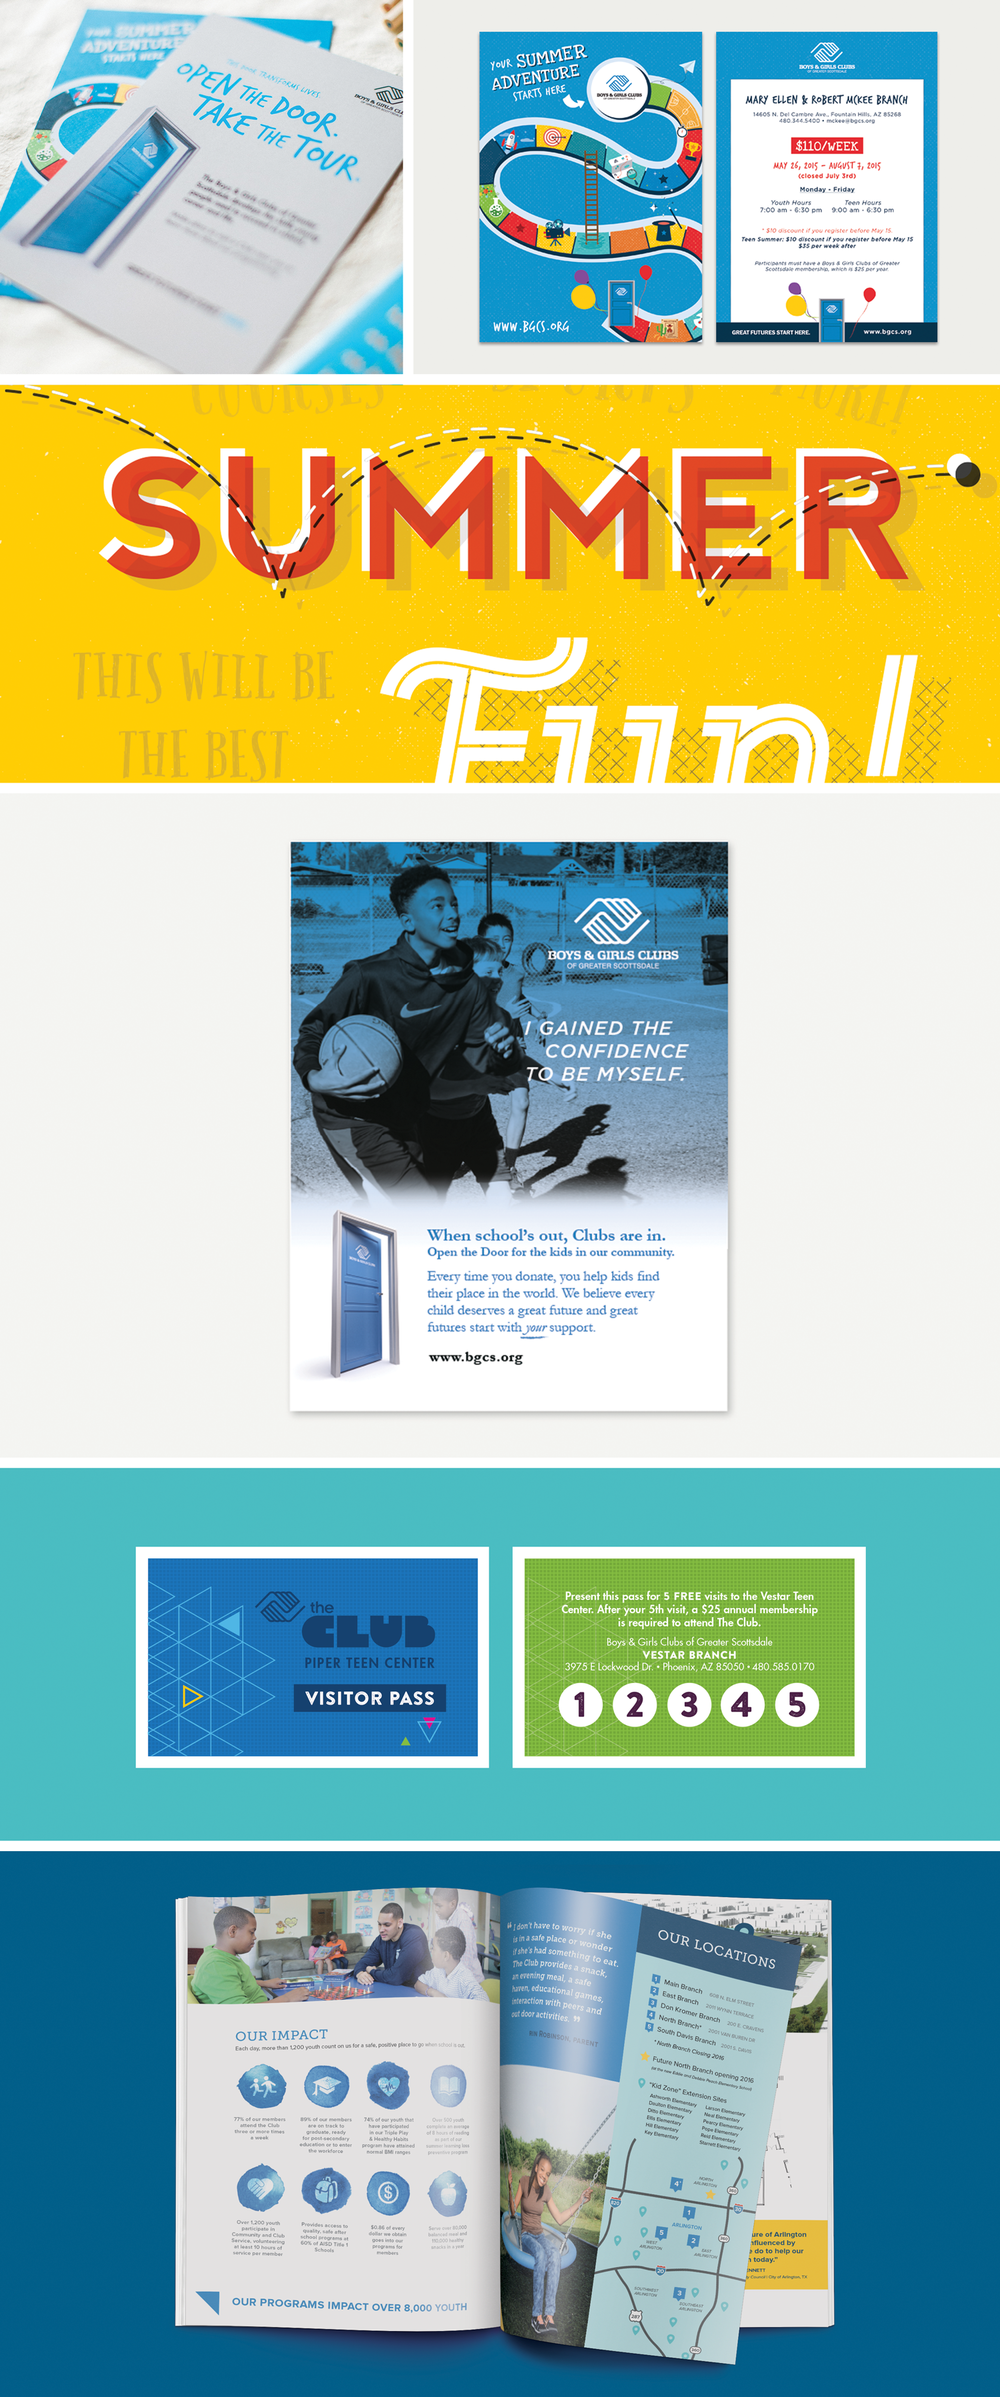 Boys & Girls Clubs design work by Pace Creative Design Studio